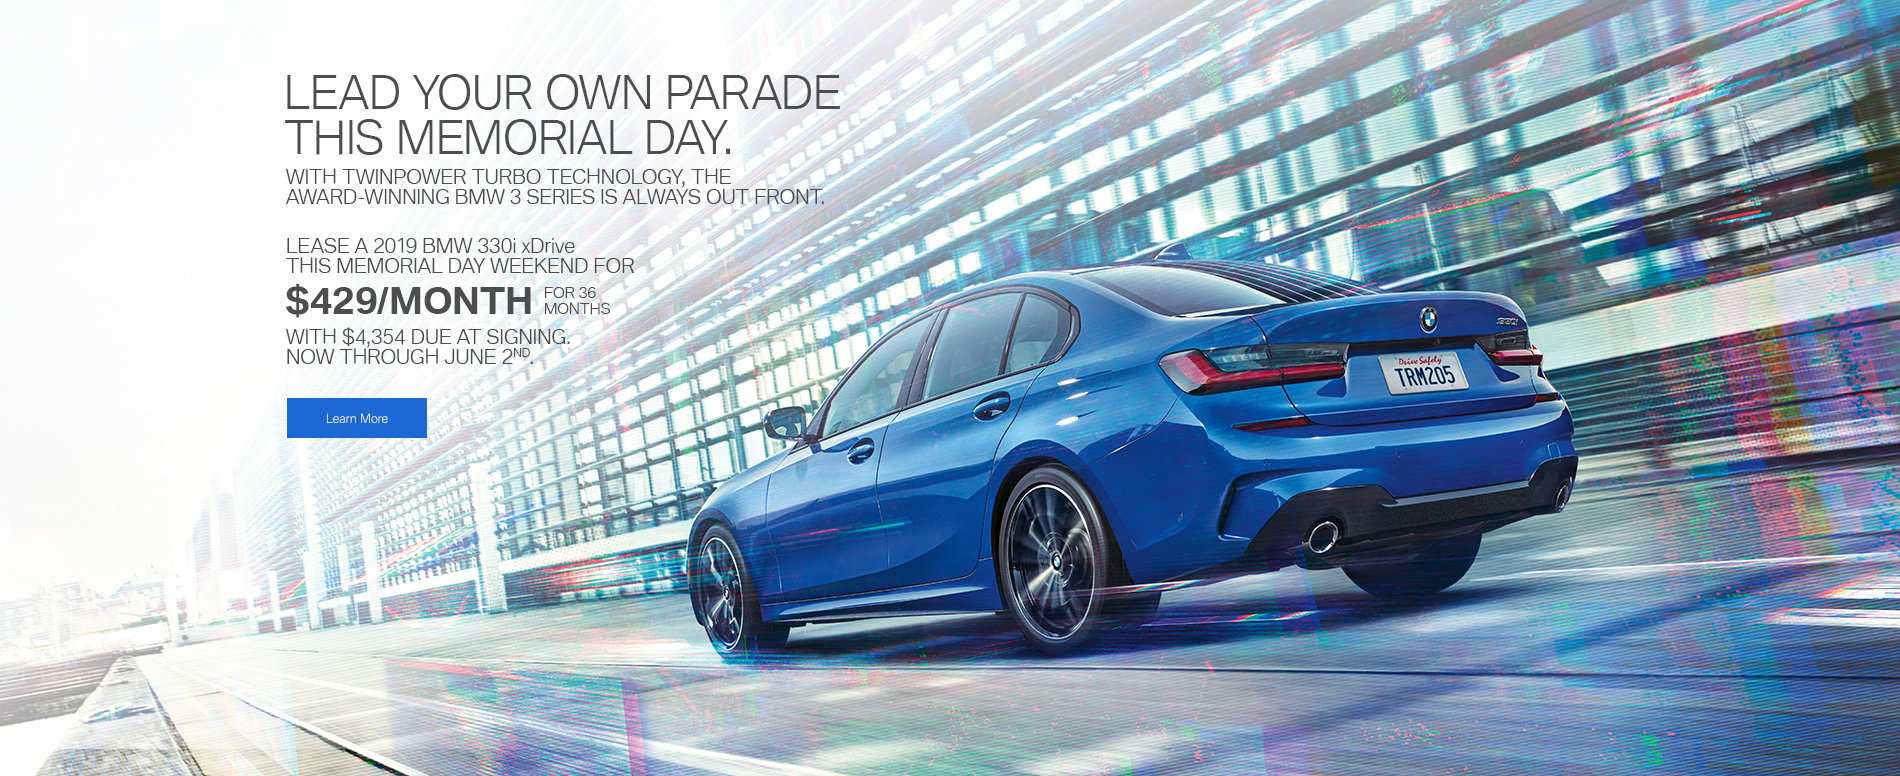 2019 BMW 3 series Memorial Day